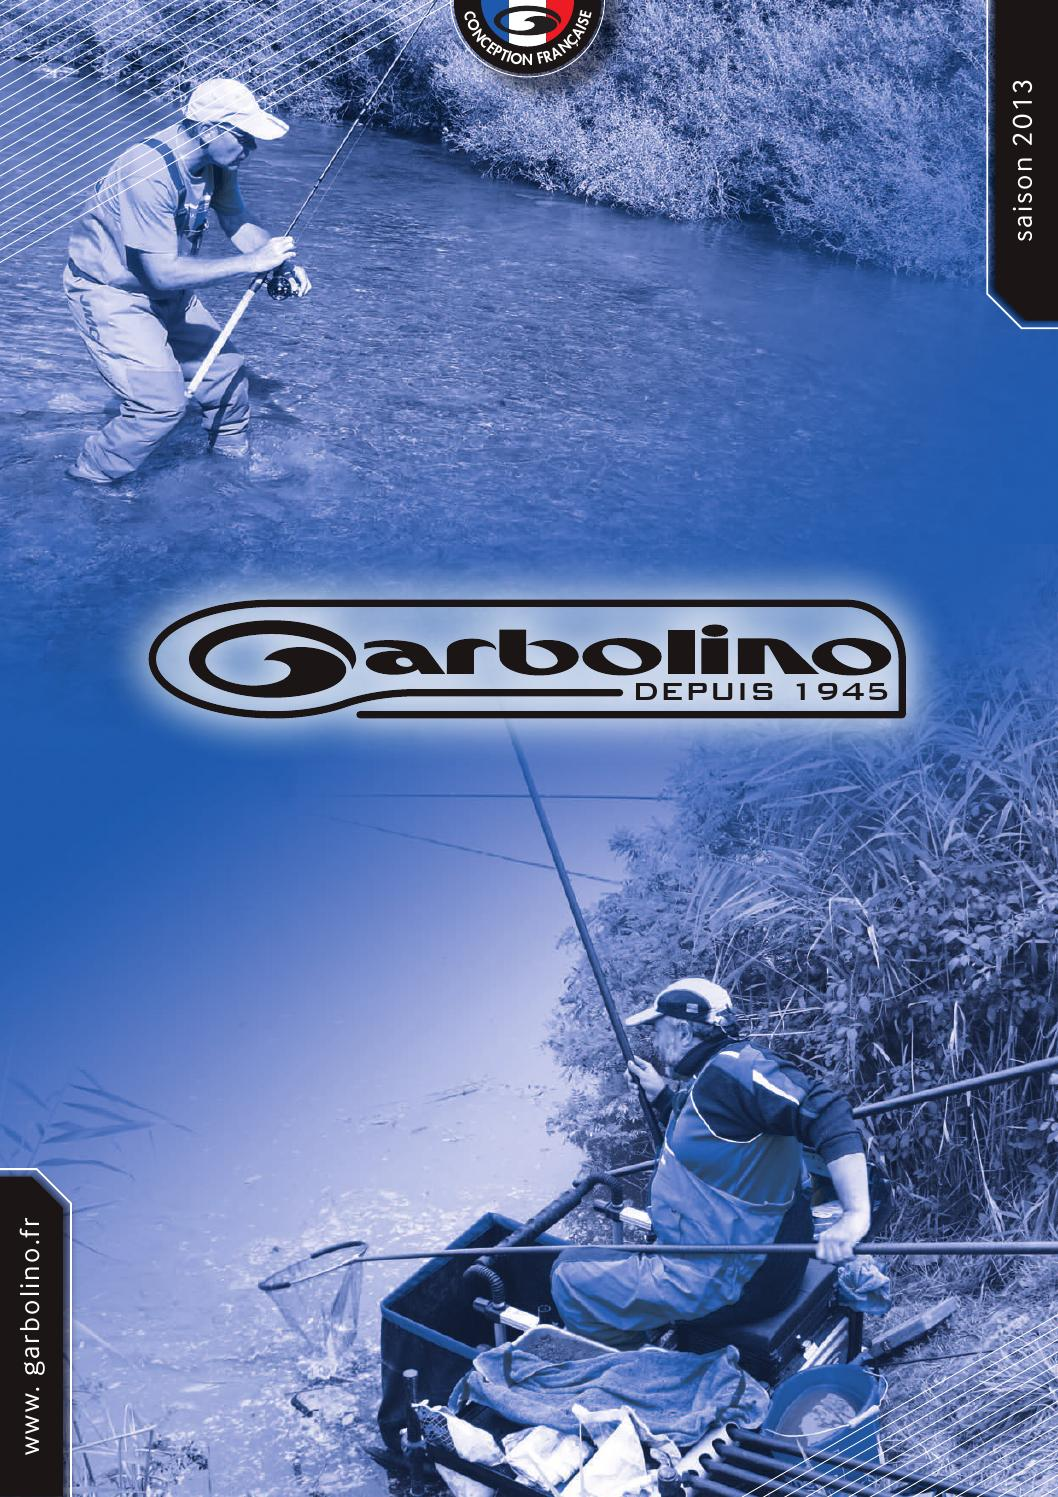 60 Garbolino Canne Spinning Spin Max Tele M 150 6 240 8-30